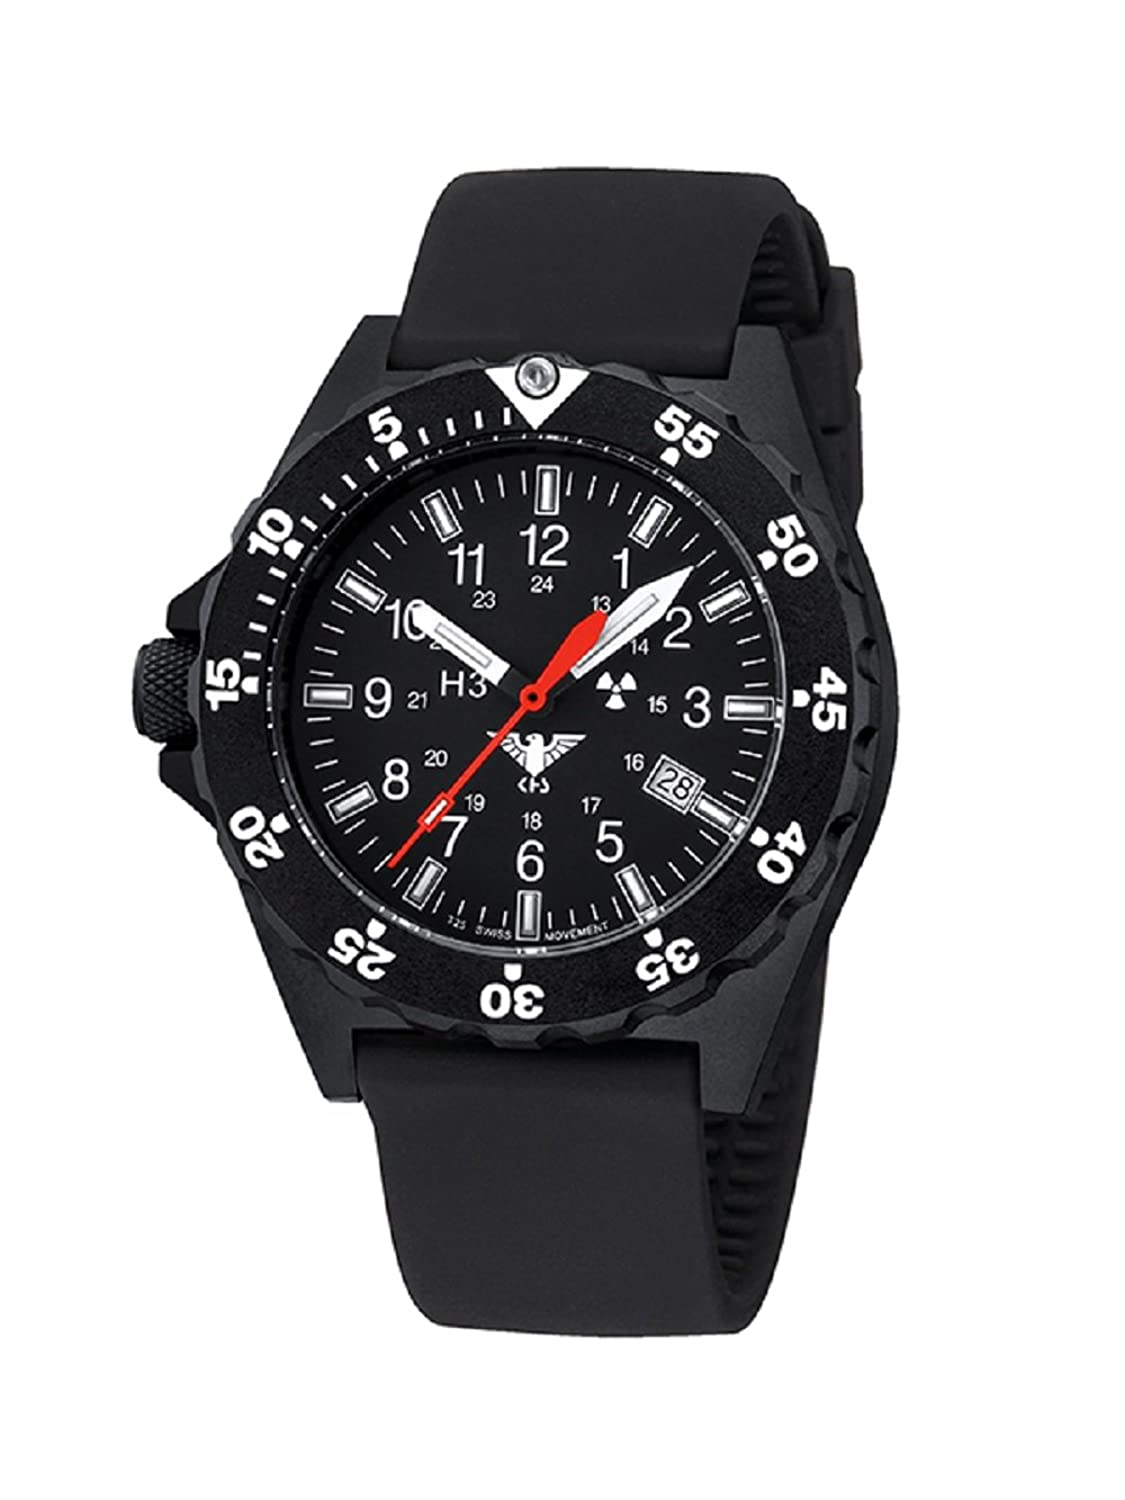 KHS Shooter KHS.SH.S Silikonband inkl. Watch-Glass-Protection Schutzfolie